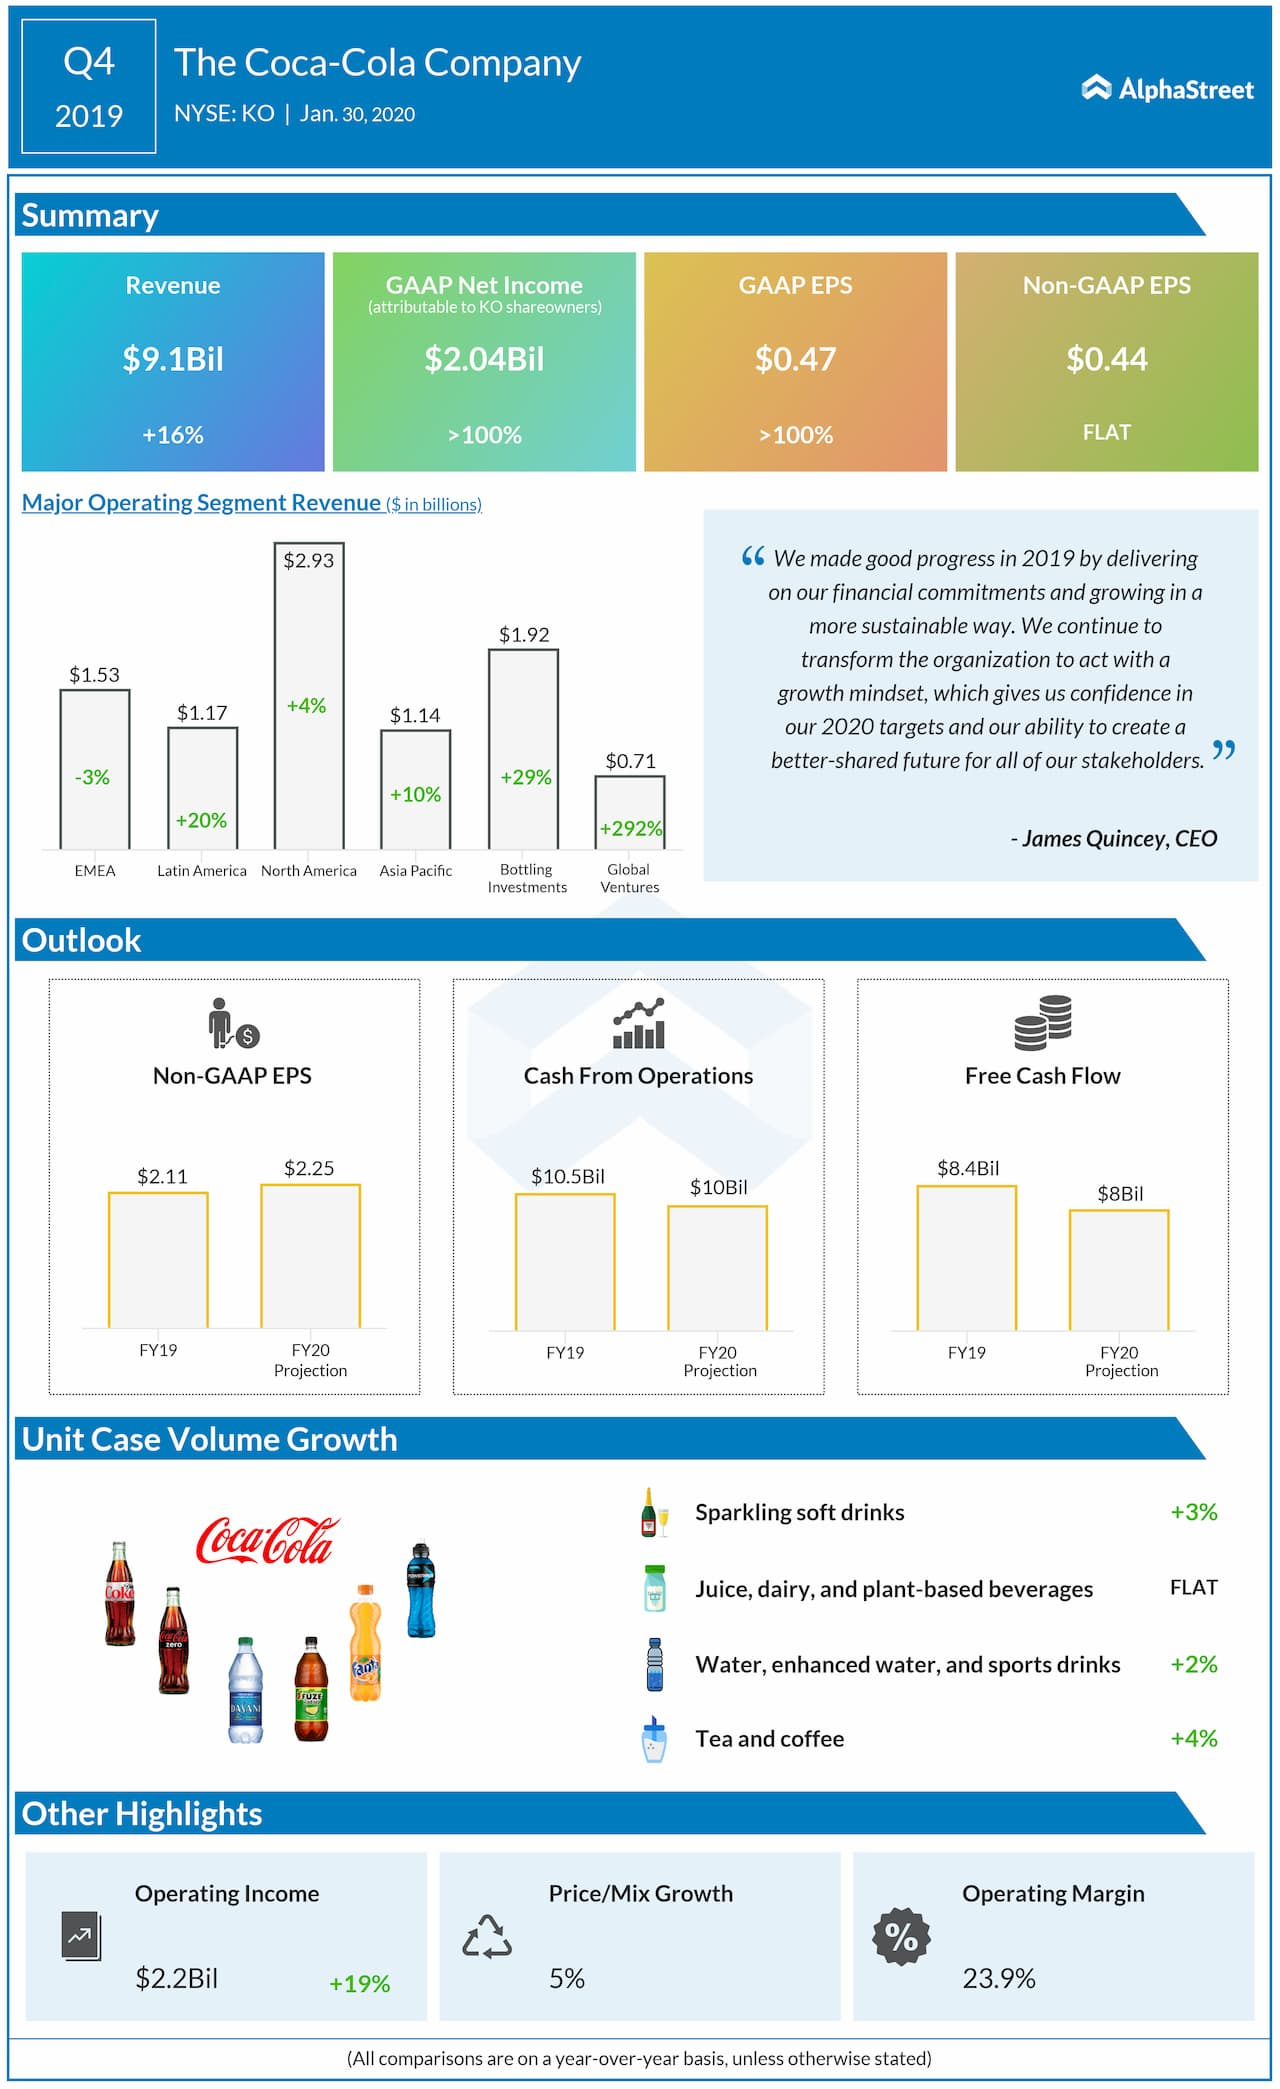 Coca-Cola company Q4 2019 earnings IG